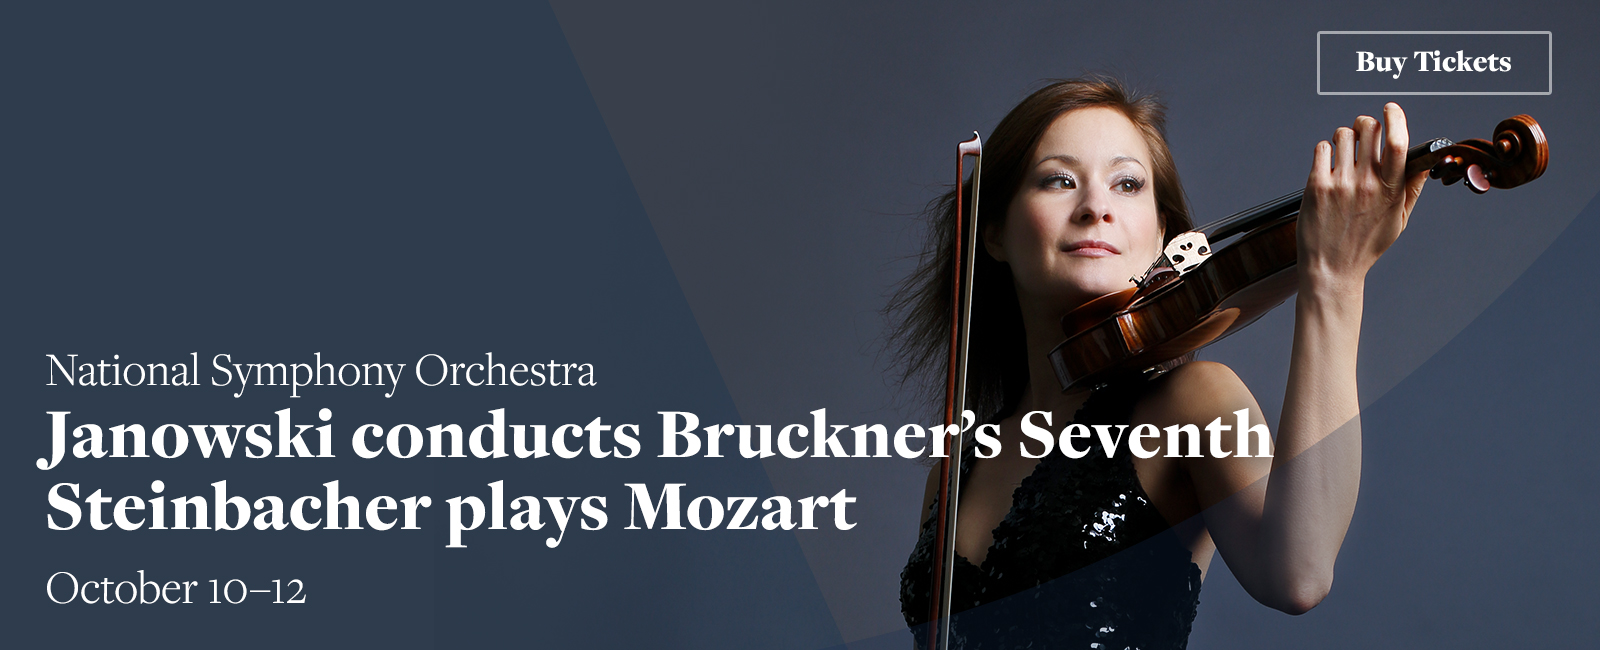 Steinbacher plays Mozart